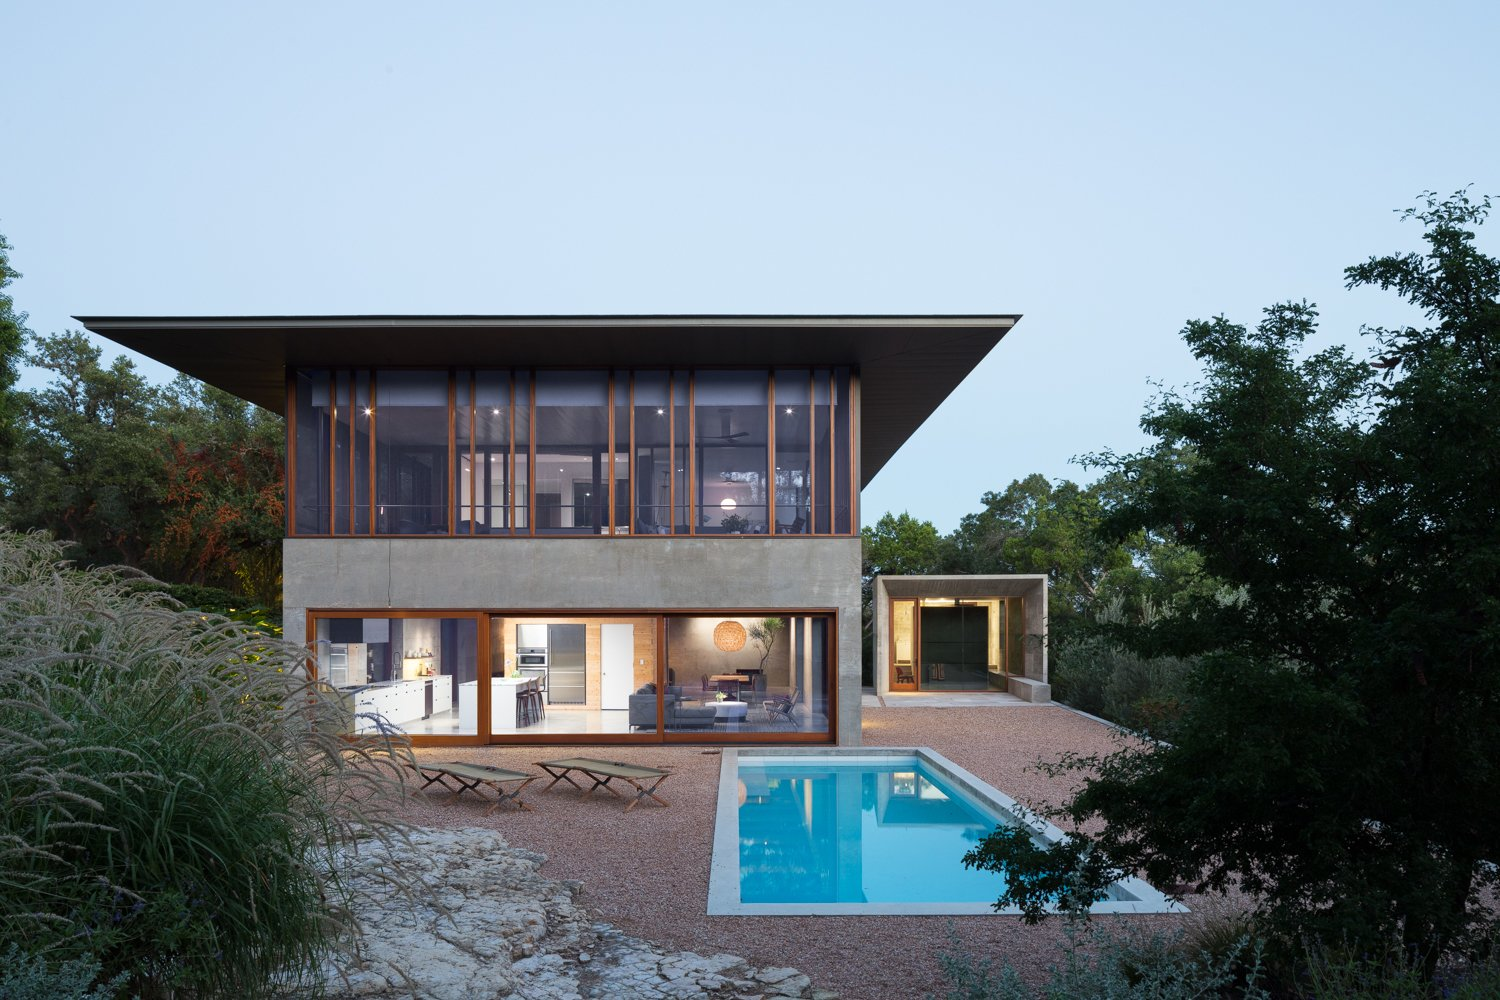 Outdoor, Shrubs, Hardscapes, Back Yard, Trees, and Swimming  Best Outdoor Shrubs Swimming Photos from A Dramatic Roof and Board-Formed Concrete Keep This Texas Residence Cool